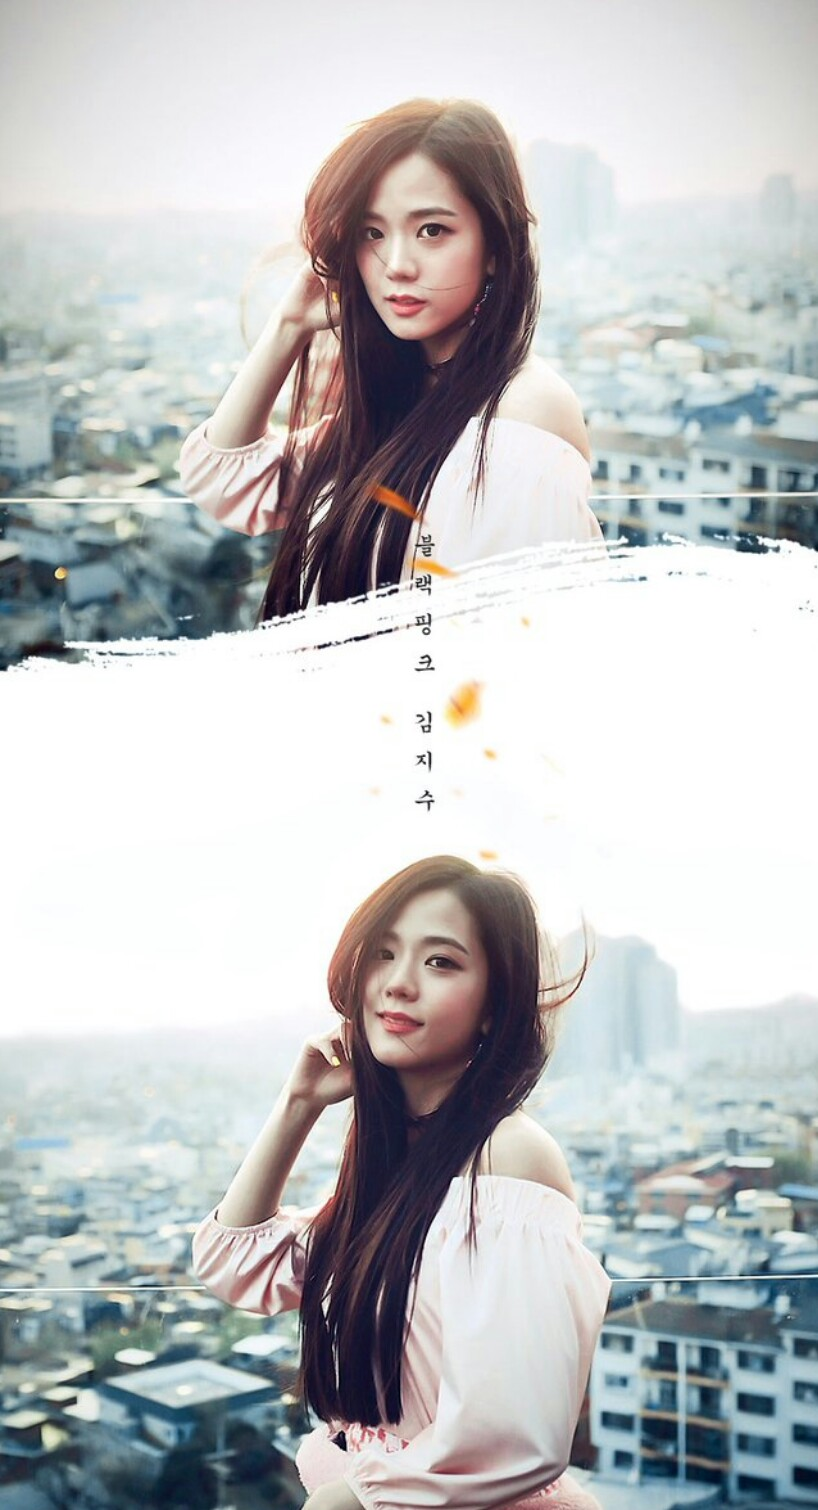 Wallpaper blackpink jisoo BLACKPINK Pinterest 818x1510